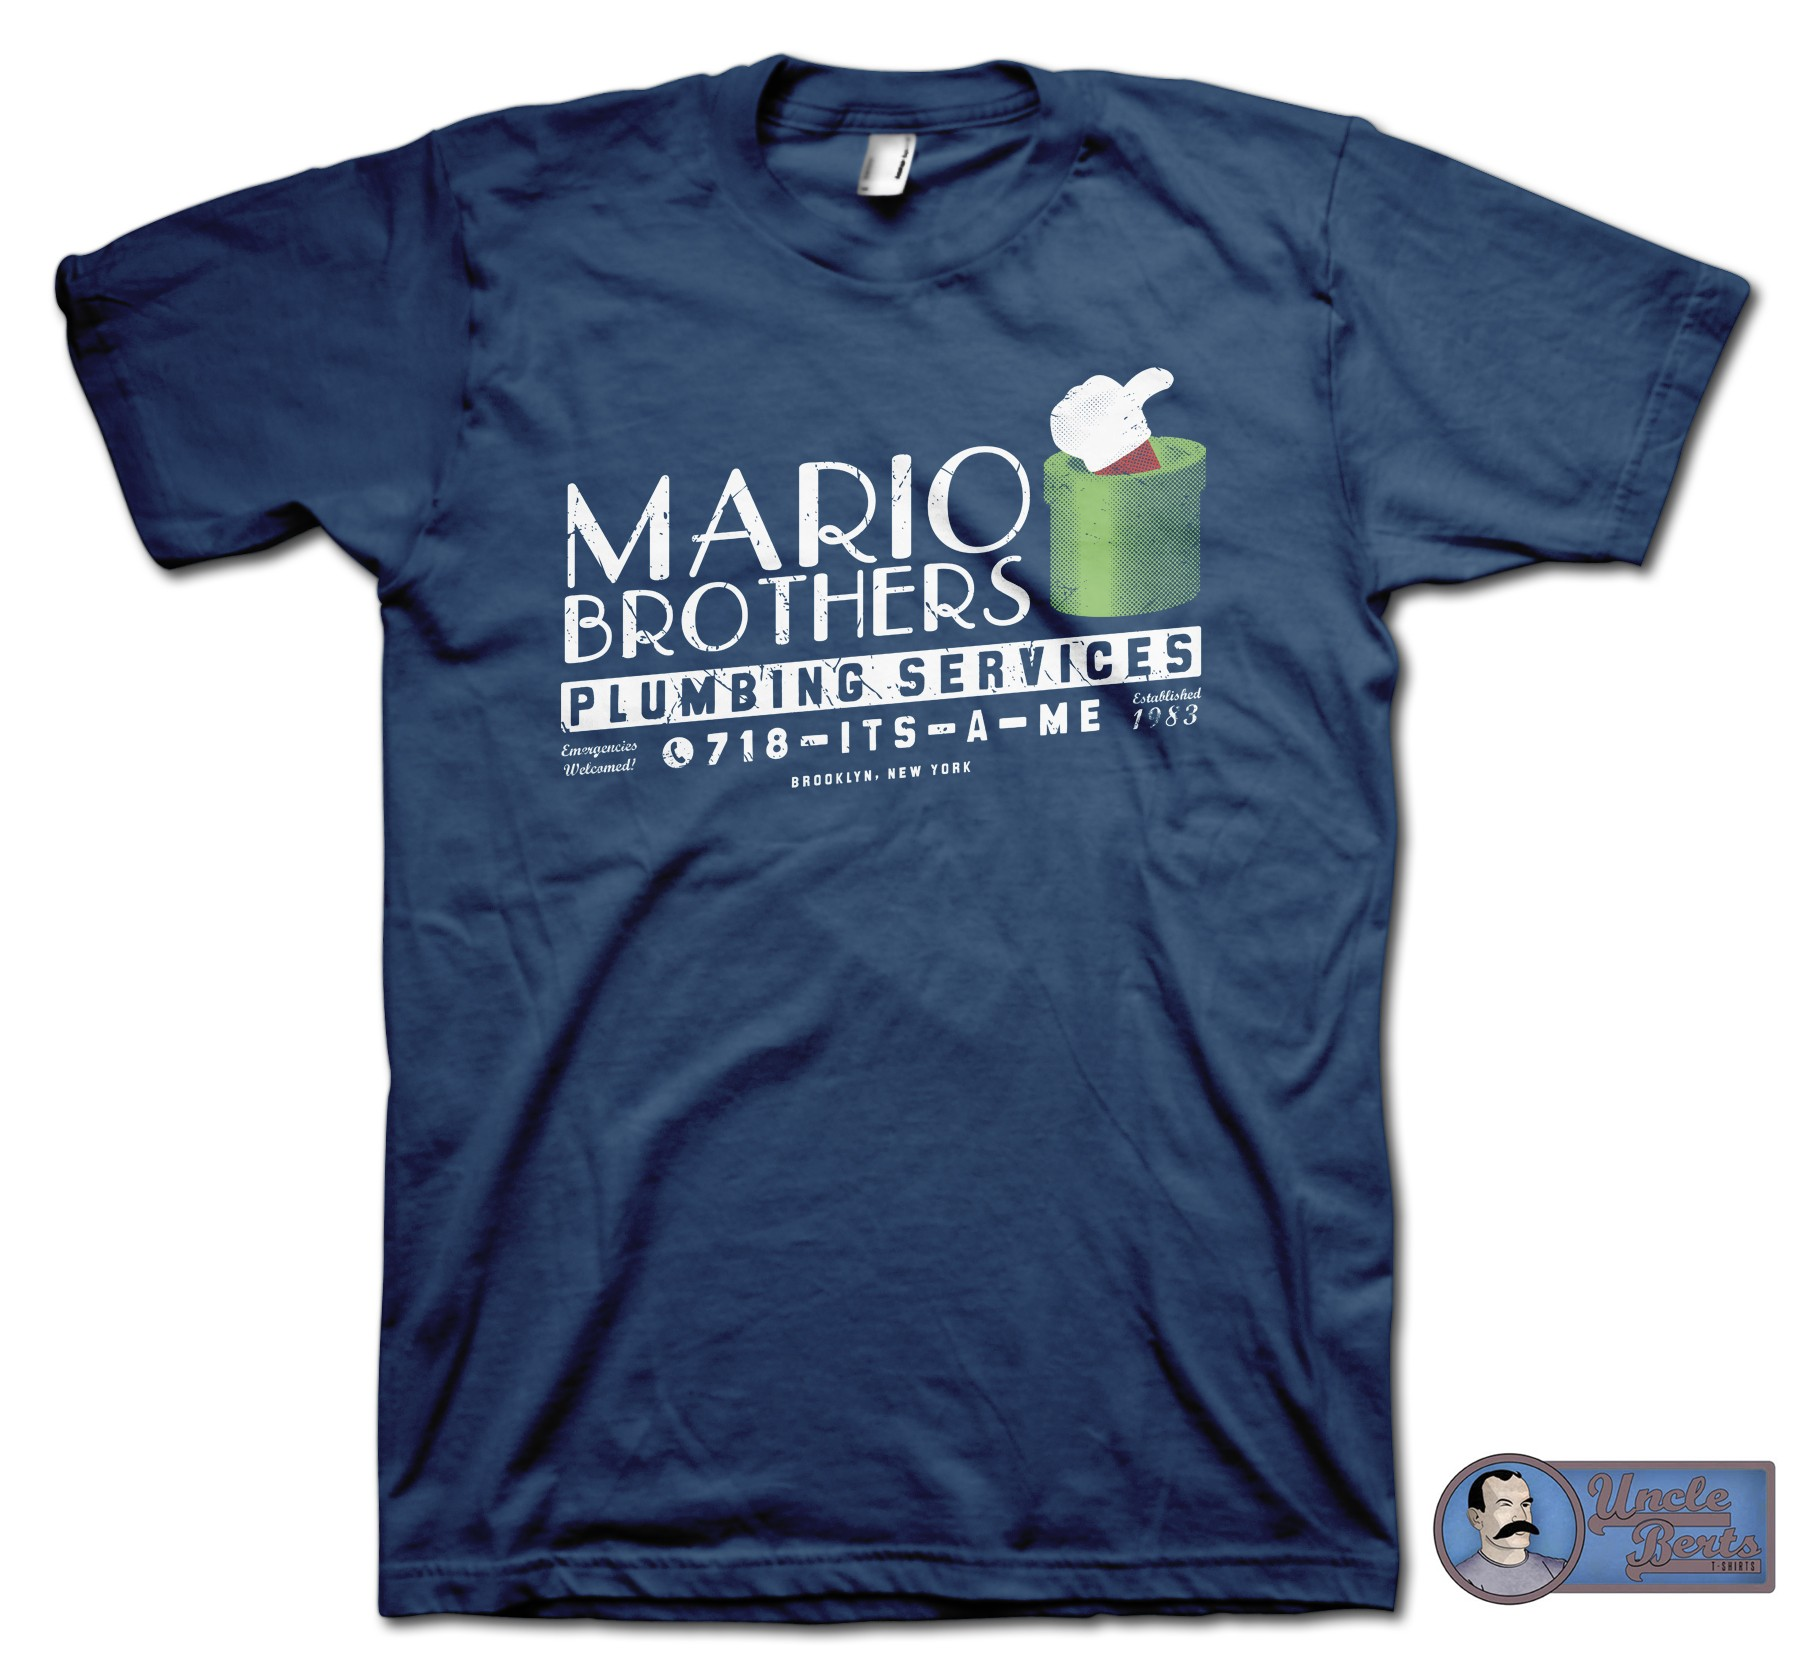 Mario Brothers Plumbing Services T-Shirt - inspired by the Mario series